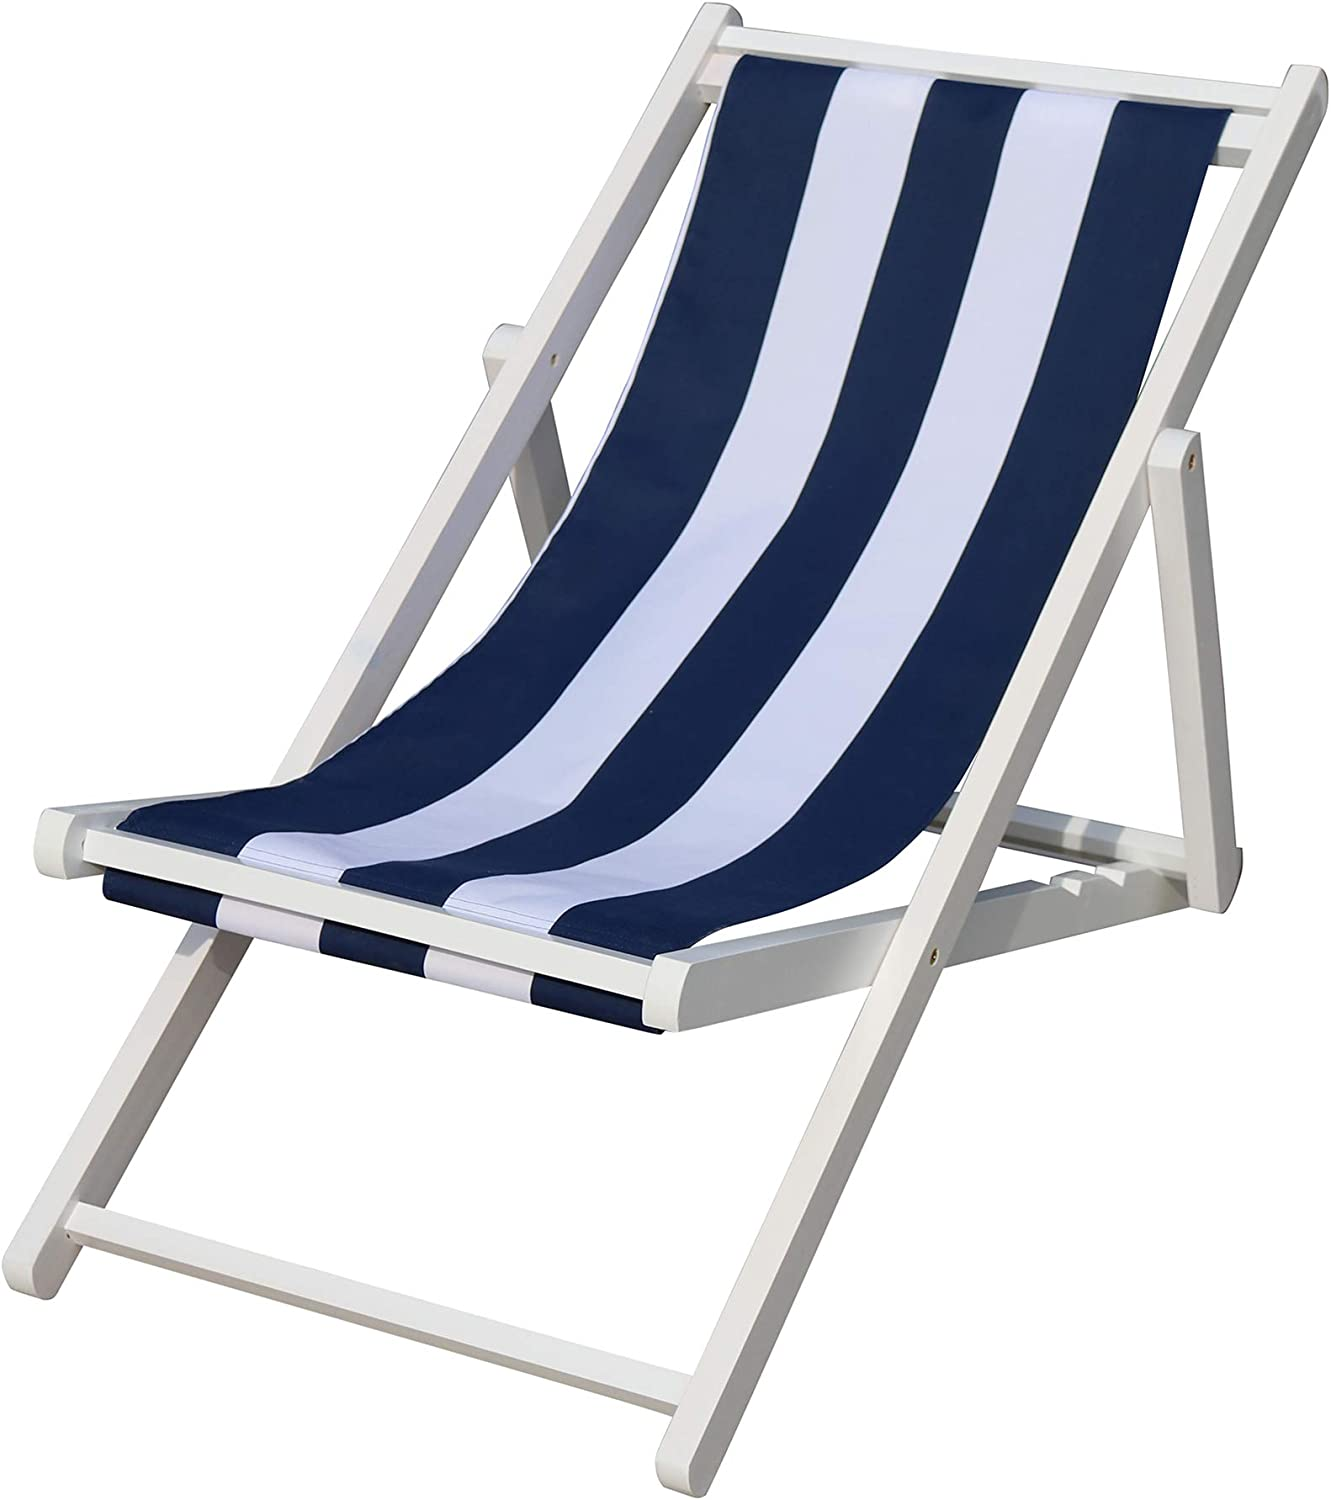 Outdoor Sling Cheap SALE Start Chair Populus Wood Pat for Chairs Foldable Striped Cheap mail order shopping